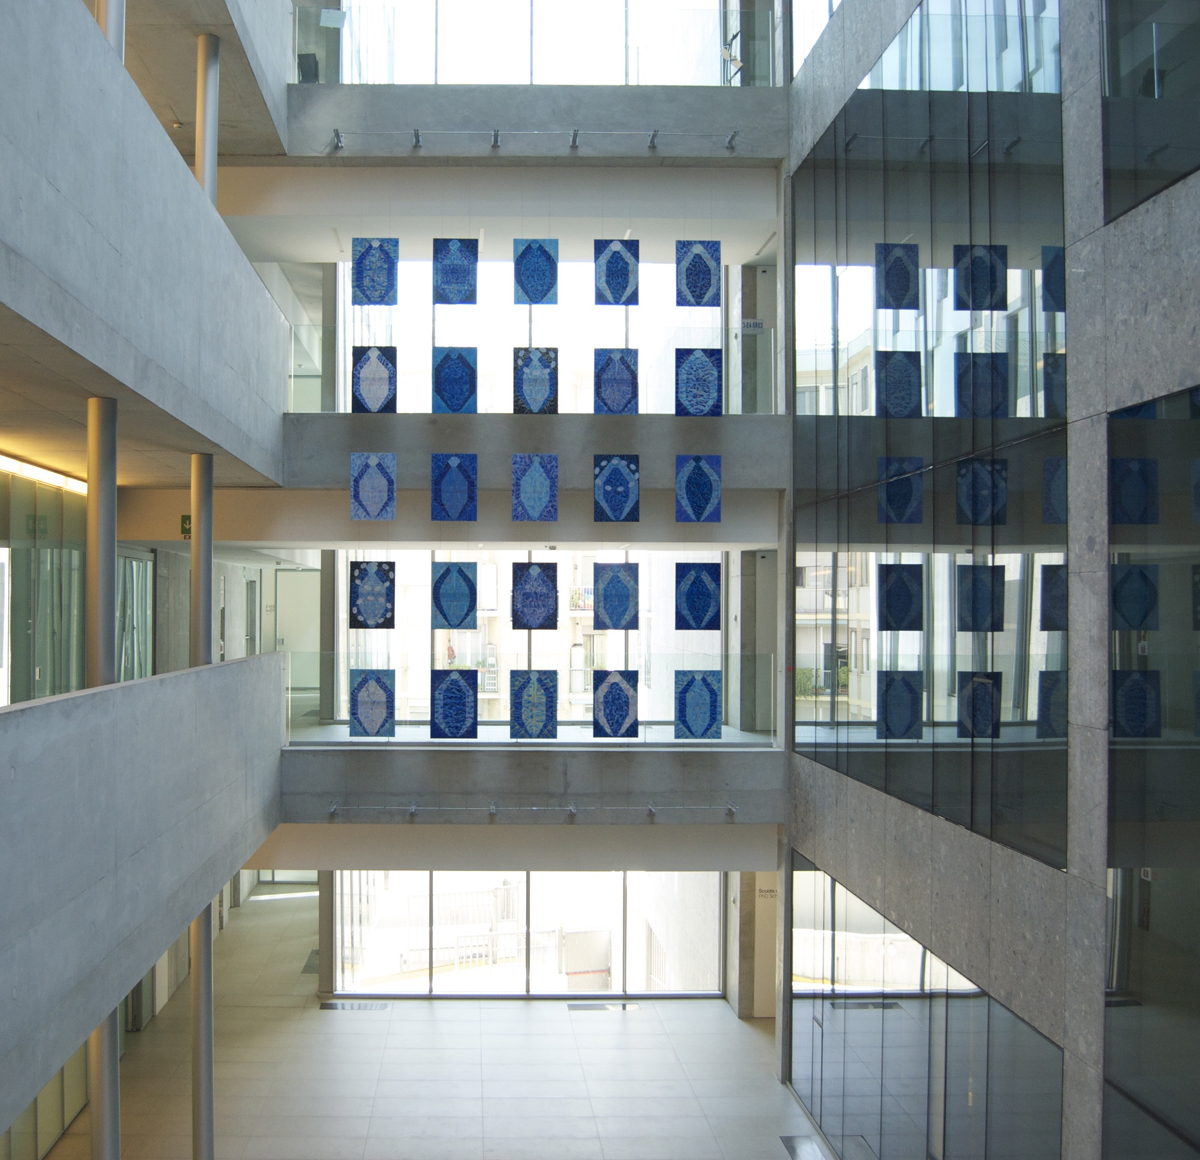 Venticinque minerali blu, 2005, installation view at Università Bocconi, Milano